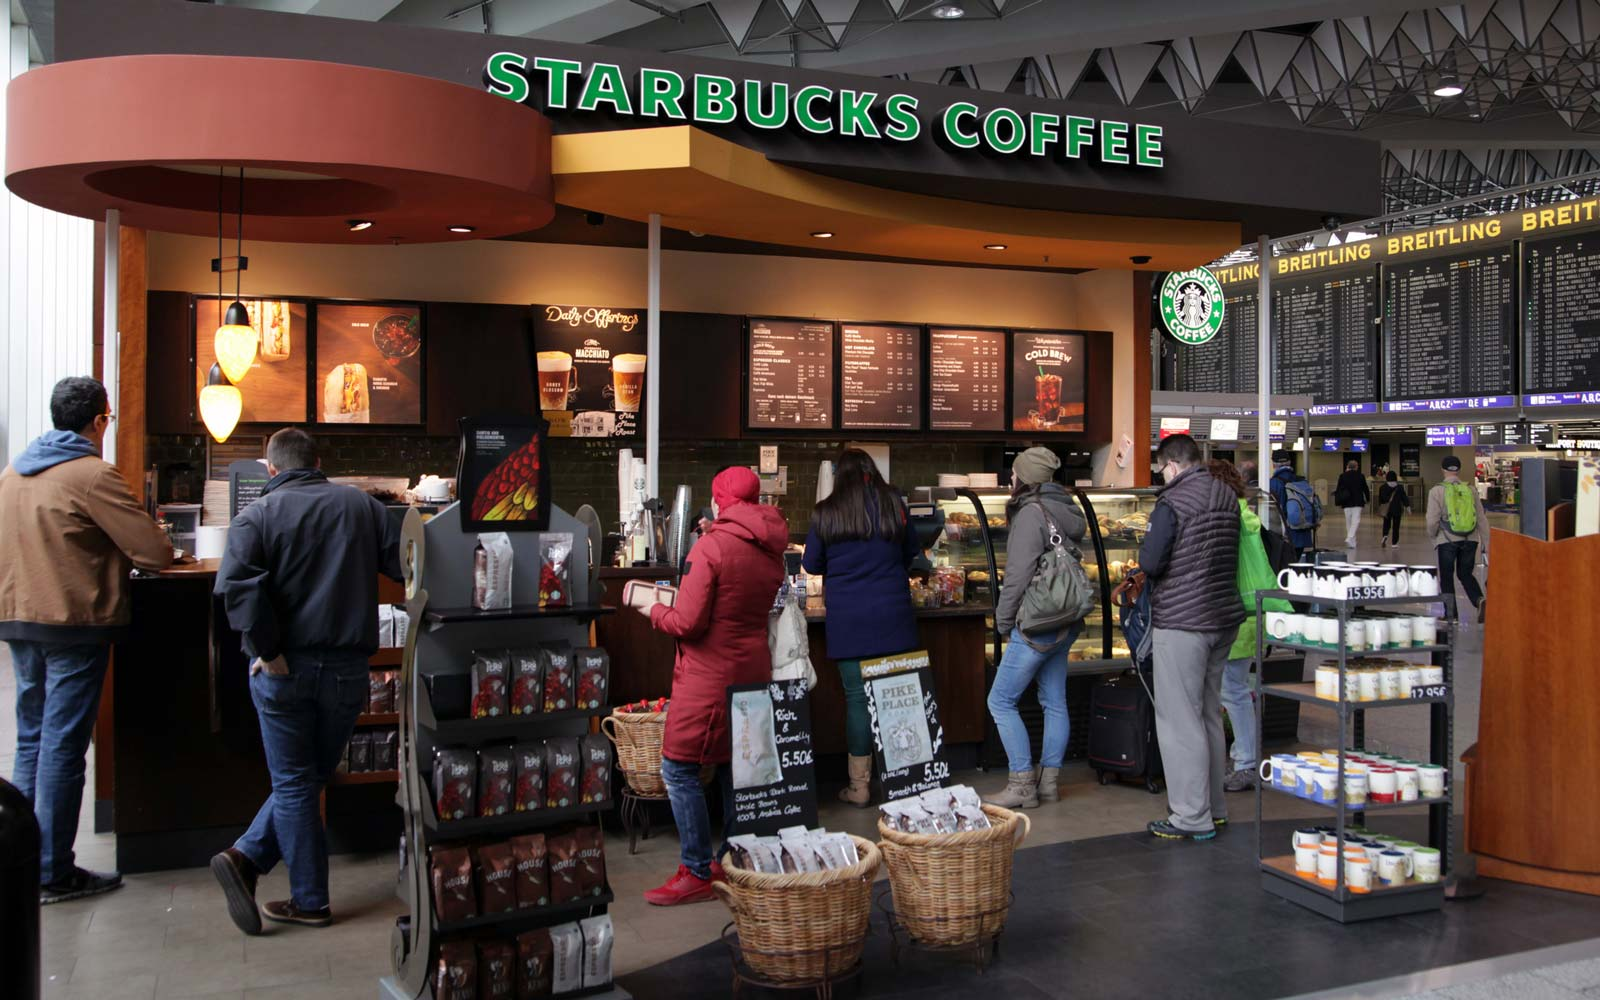 People queing up on coffee and snackbar